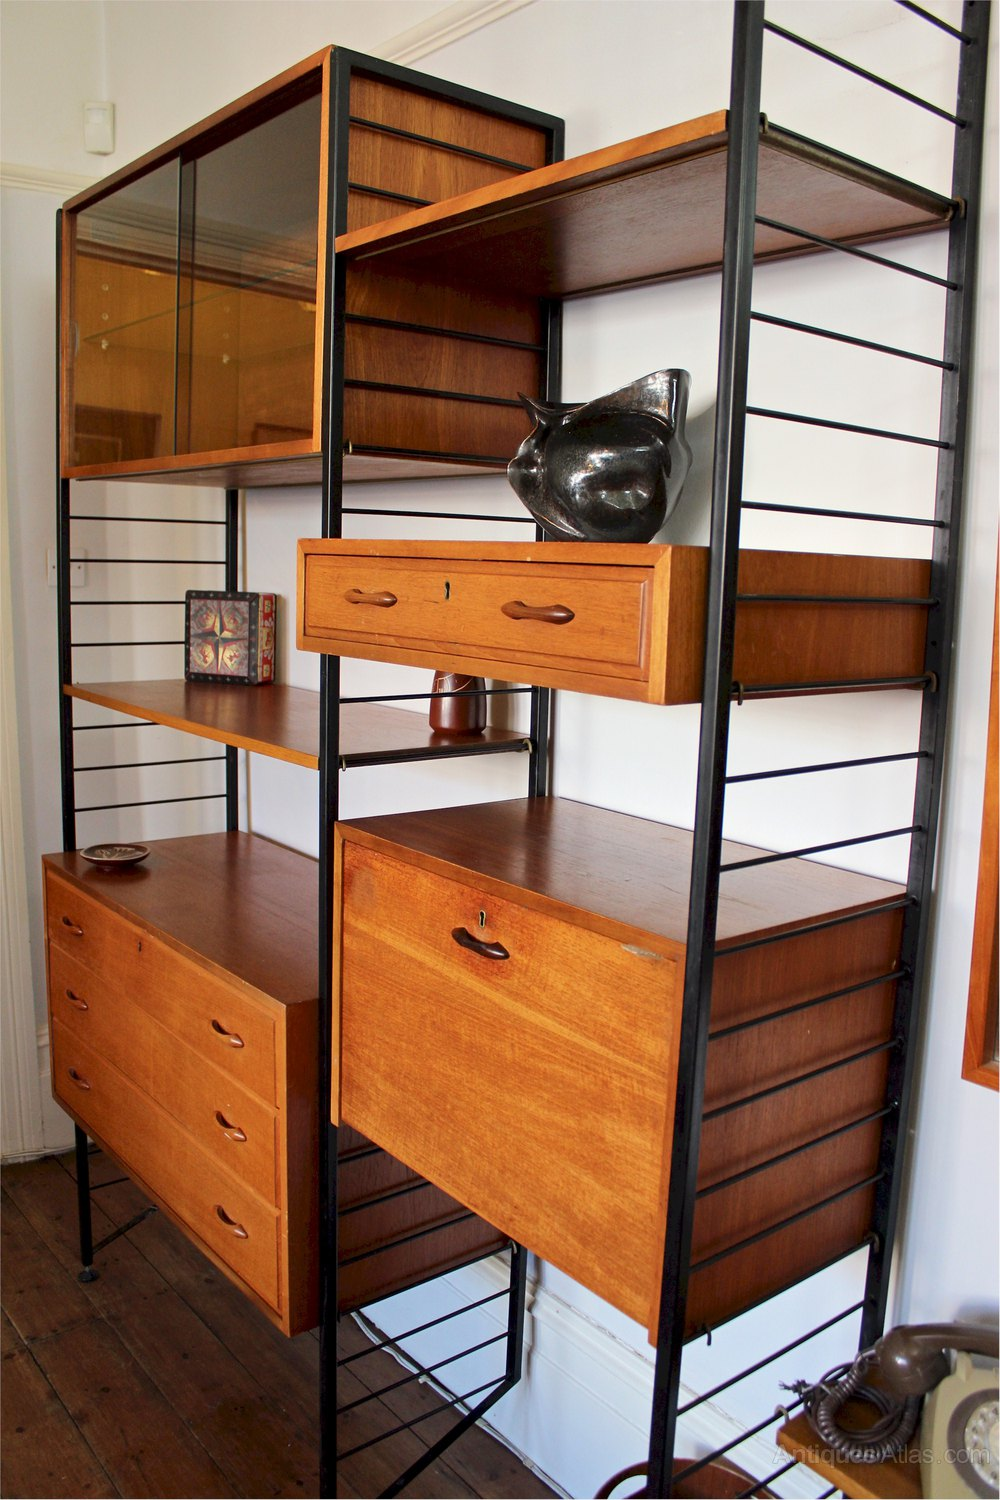 los angeles 61e80 67302 Antiques Atlas - Staples Ladderax Teak Shelving System C1960's